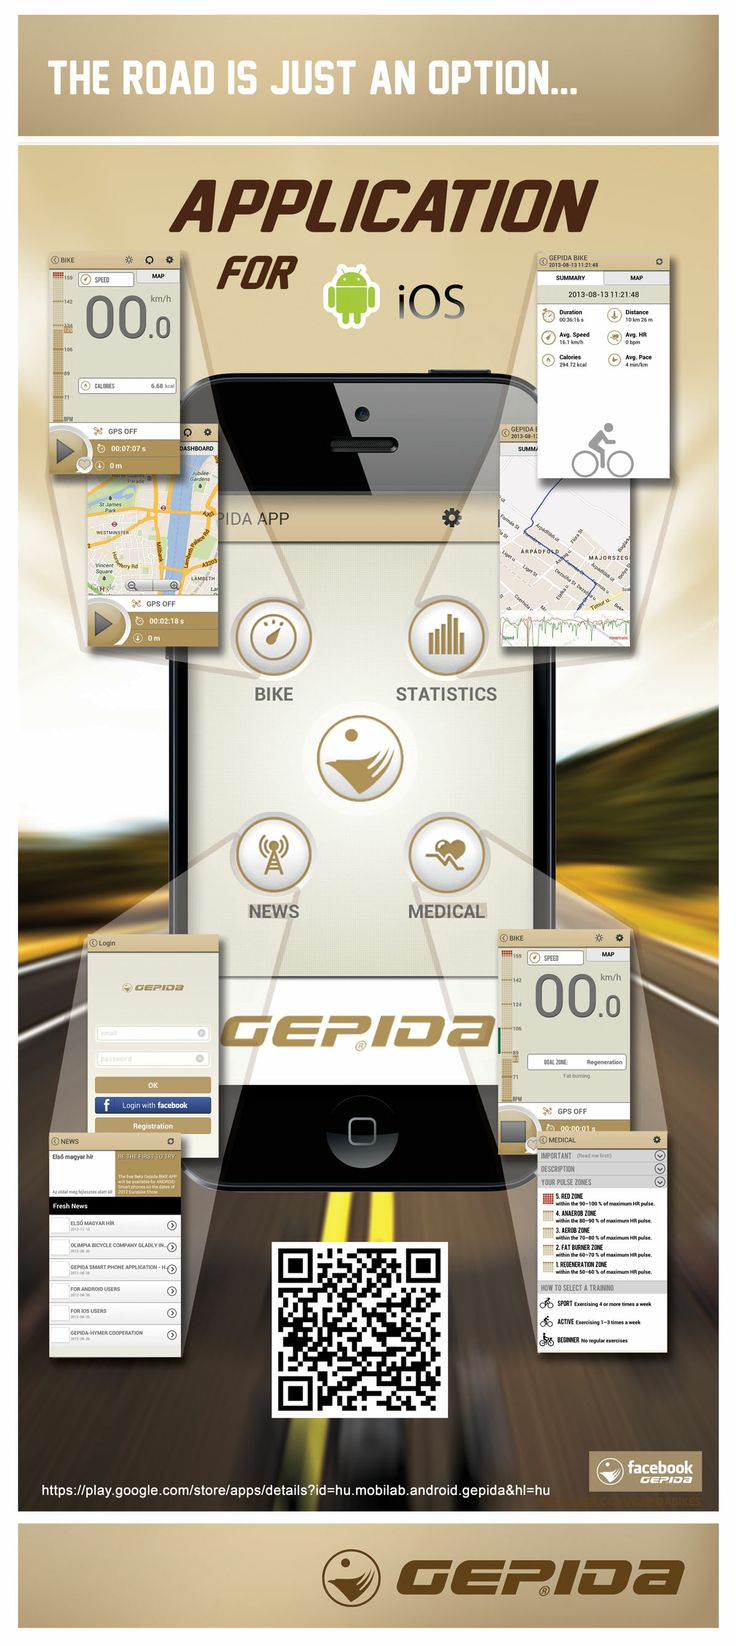 Track your workouts, analyze your trainings and take care your health every day .. all in one APP and it is free from Gepida. Practical way to manage individual's bicycle or sport activities within a controlled form that supports easy access on their smart phones with blue tooth health care devices and wide range of Statistics with web application. Check it out on www.gepidapp.com